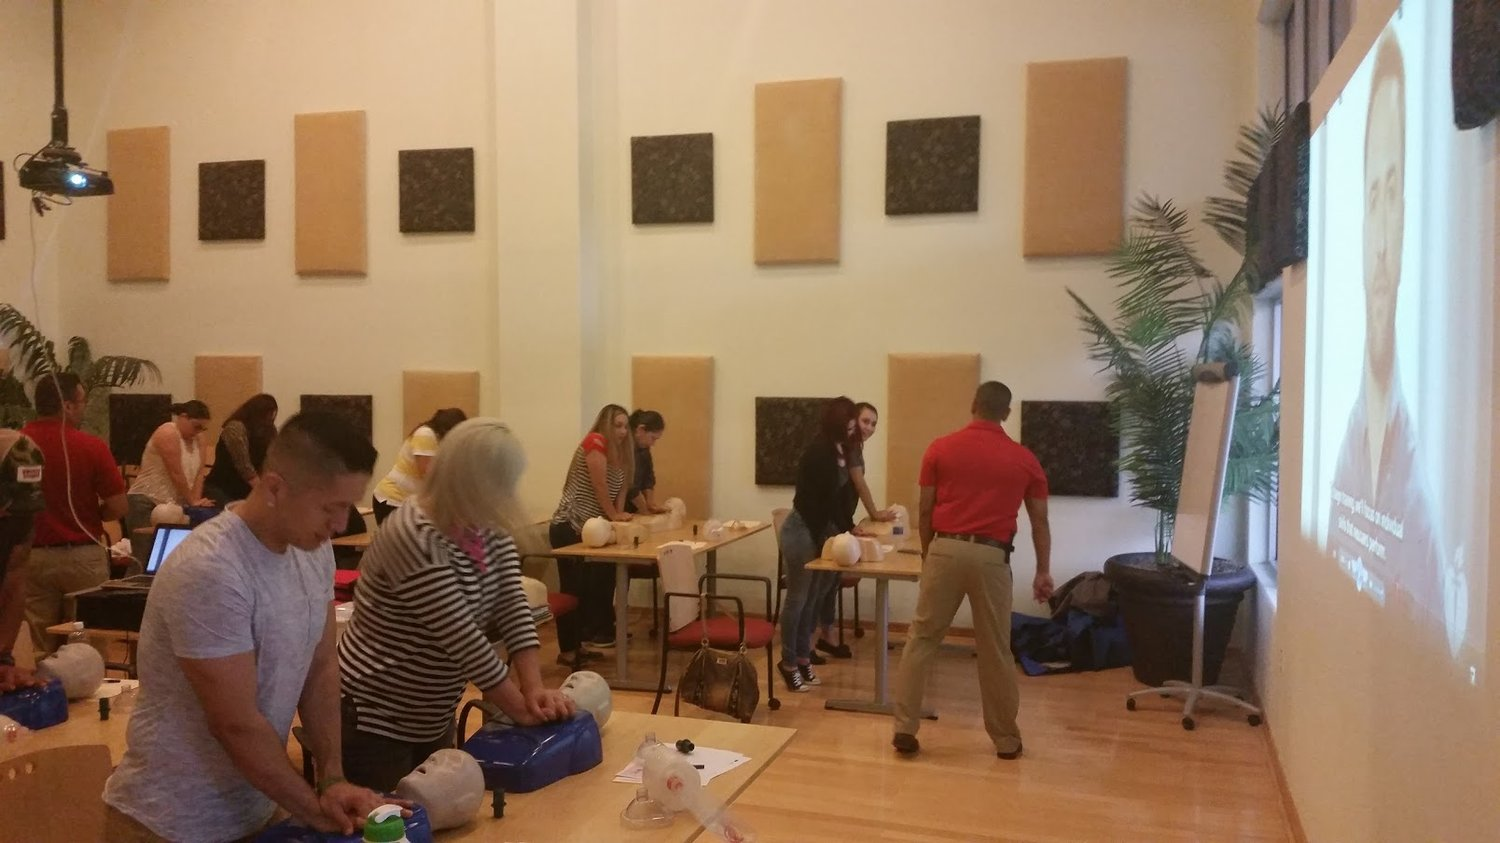 Elite medical training solutions cpr class 1g 1betcityfo Gallery